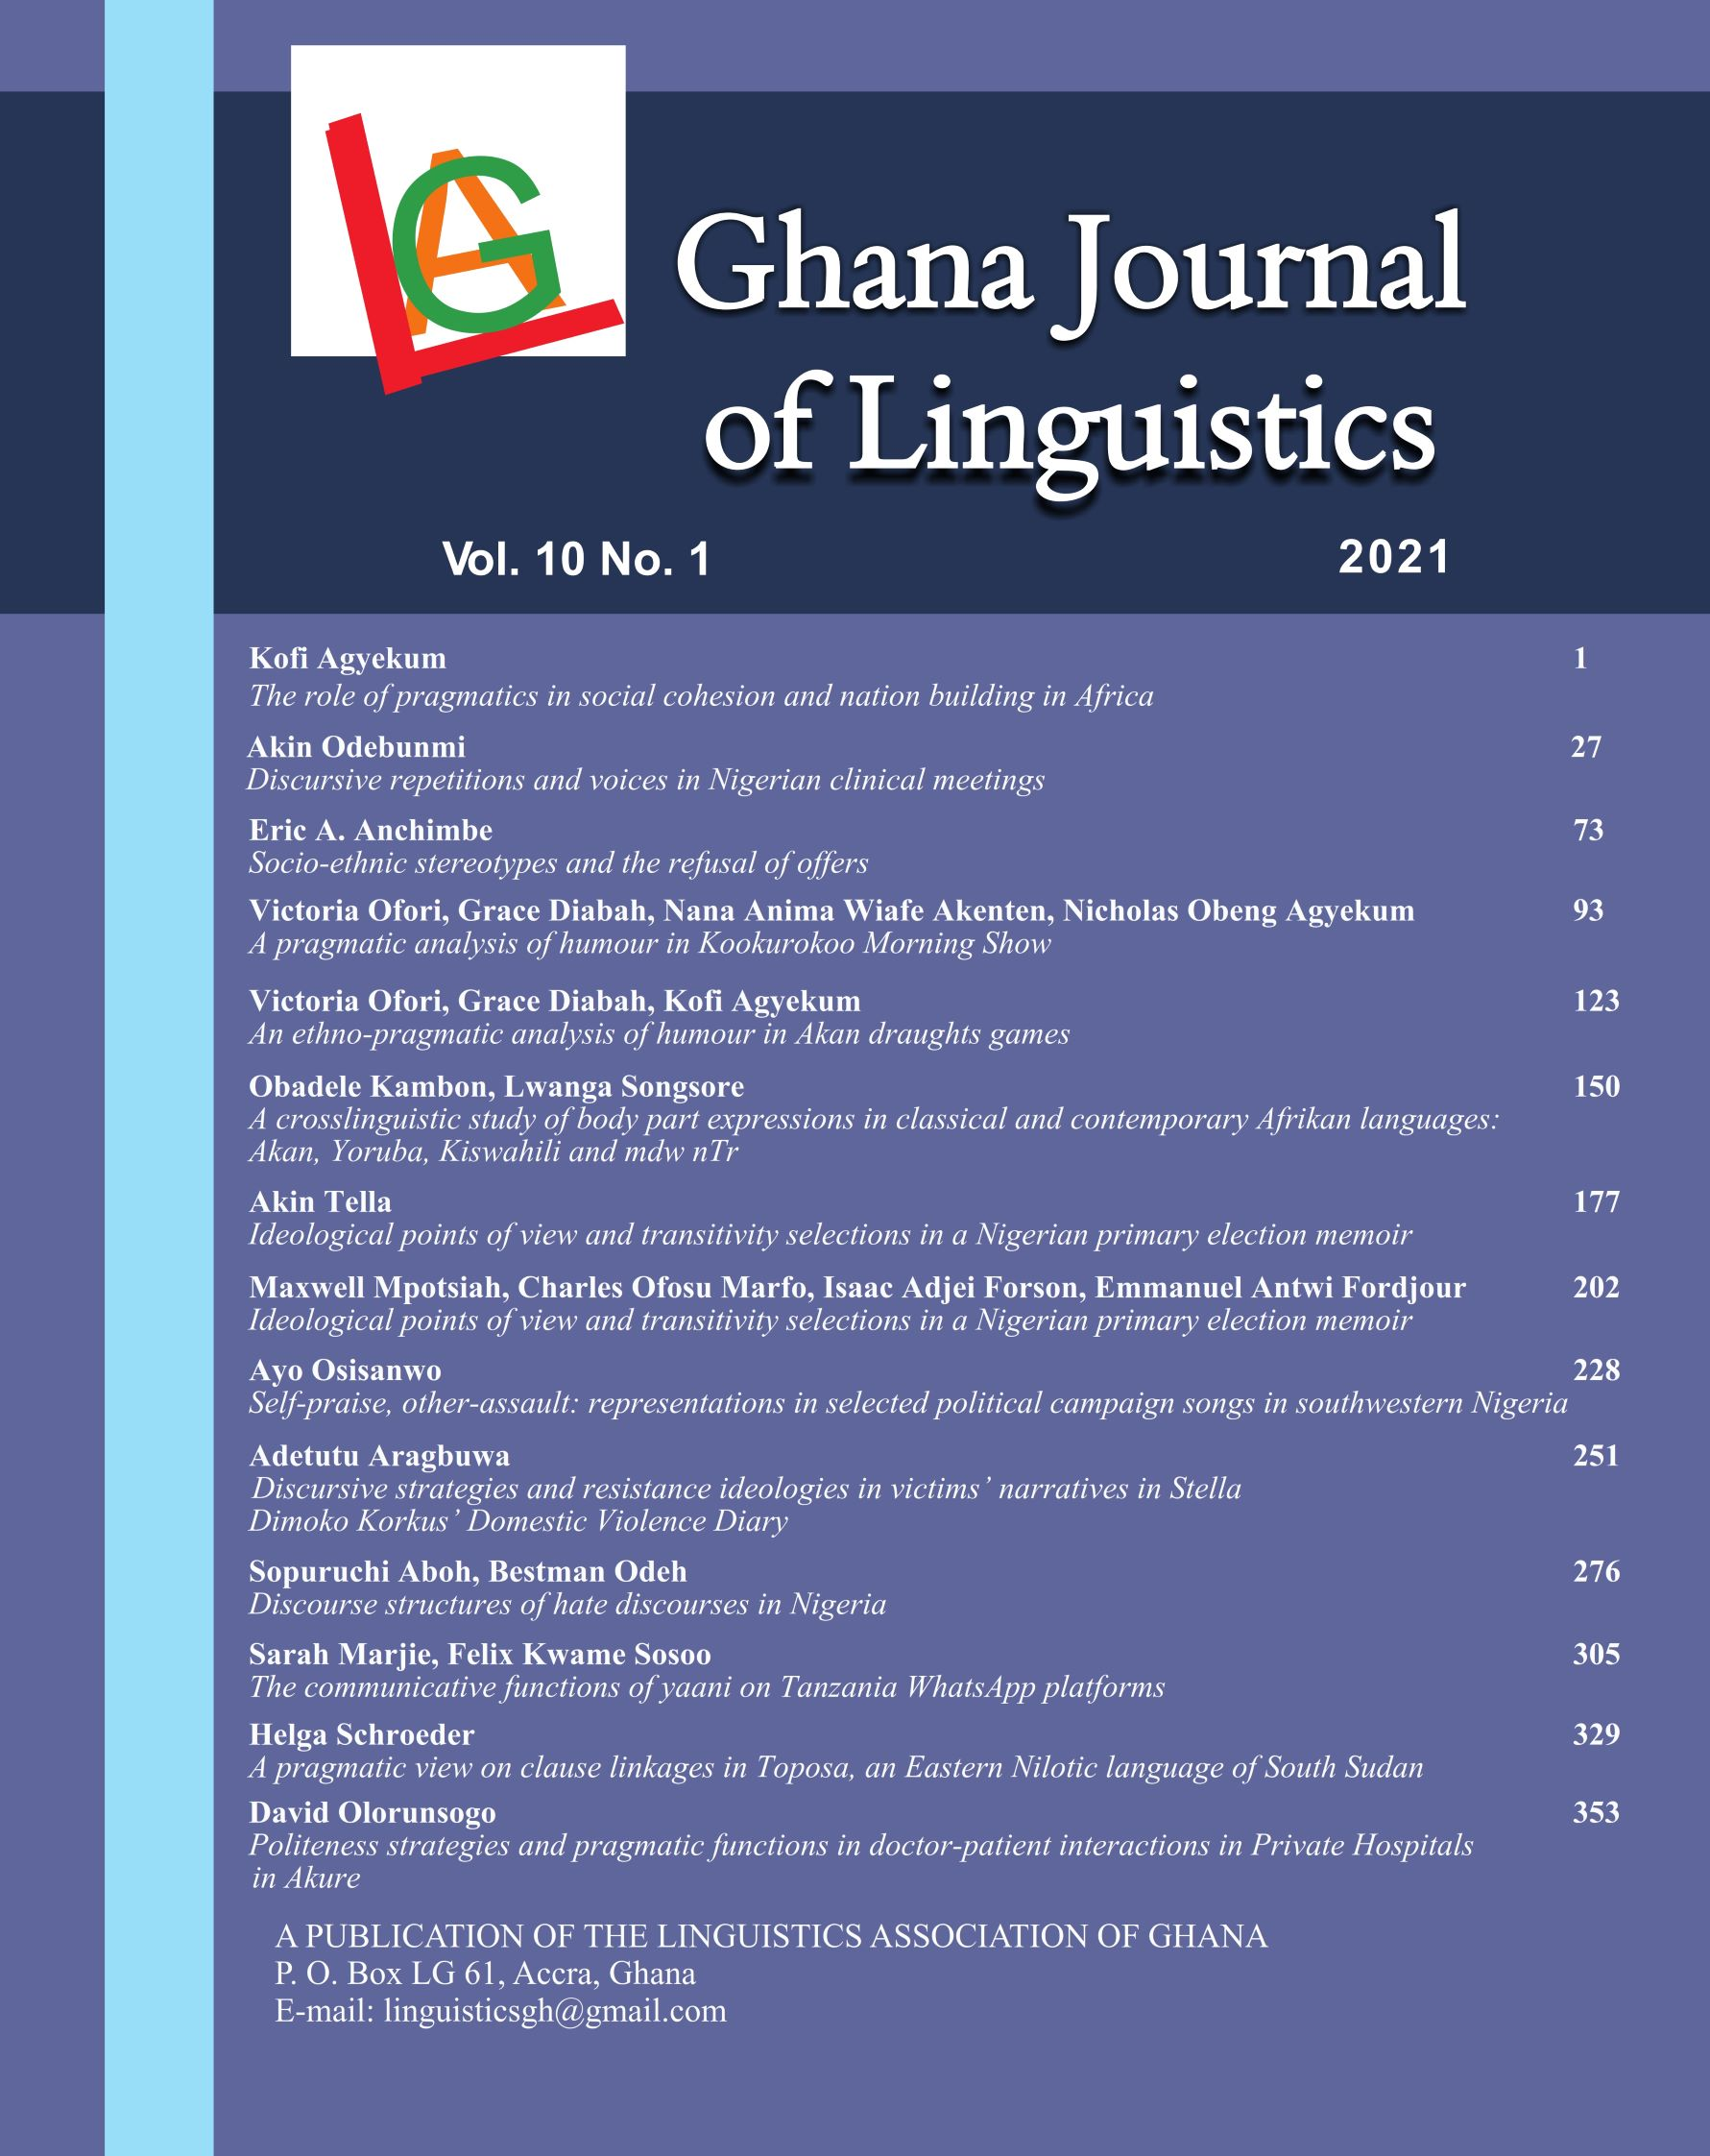 View Vol. 10 No. 1 (2021): Ghana Journal of Linguistics: Selected papers from the 1st African Pragmatics Conference